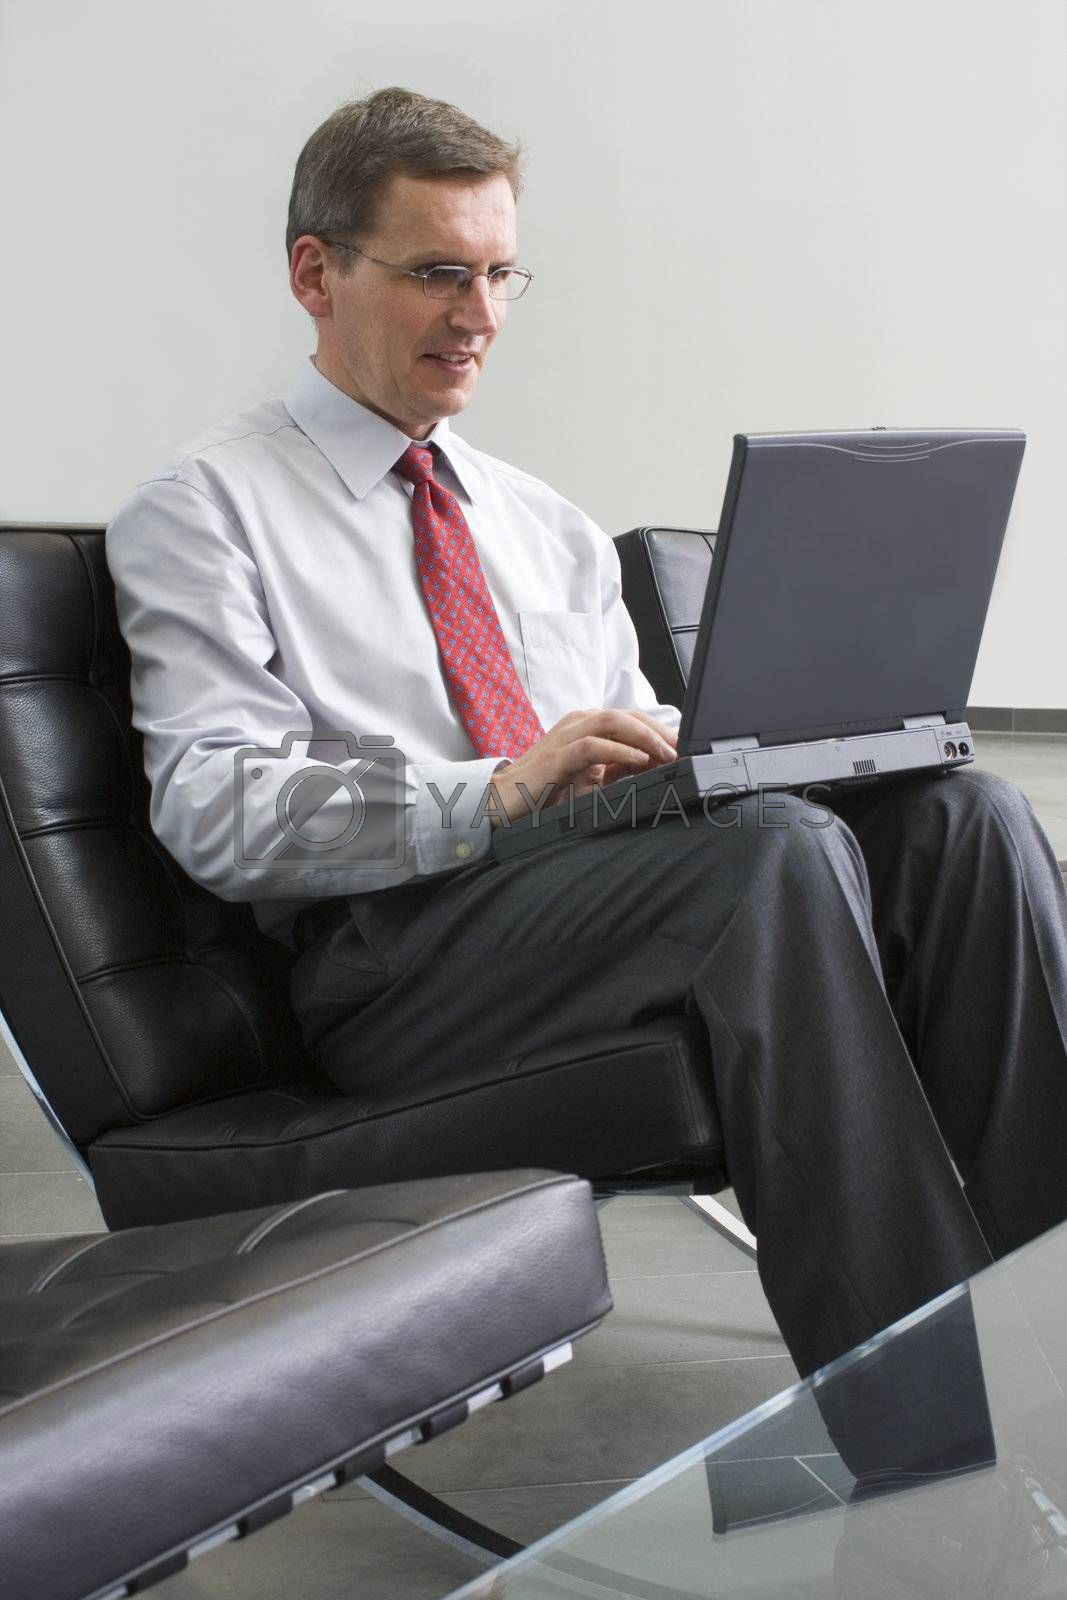 Businessman sitting in a lounge and working with laptop computer